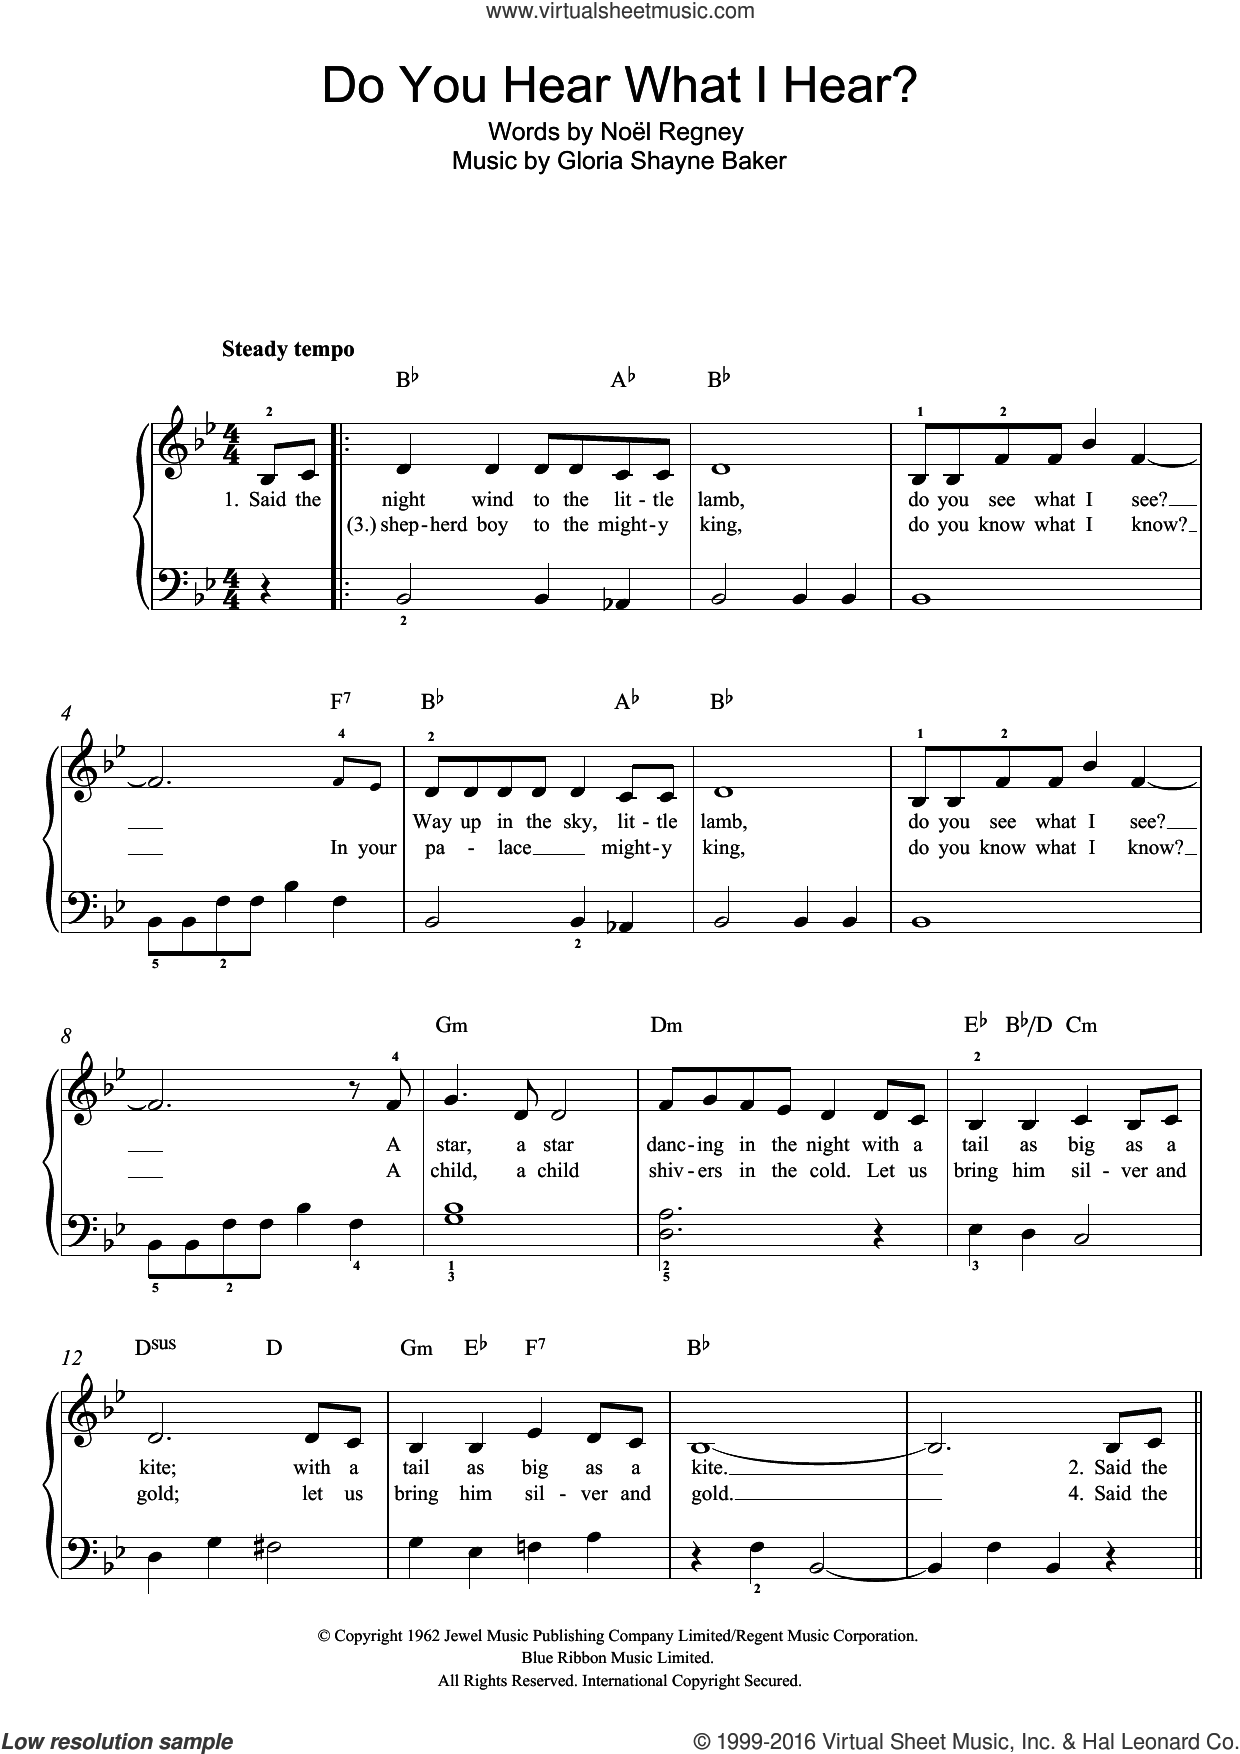 Do You Hear What I Hear? sheet music for piano solo by Mary J. Blige, Susan Boyle, Gloria Shayne Baker, Noël Regney and Noel Regney, easy skill level